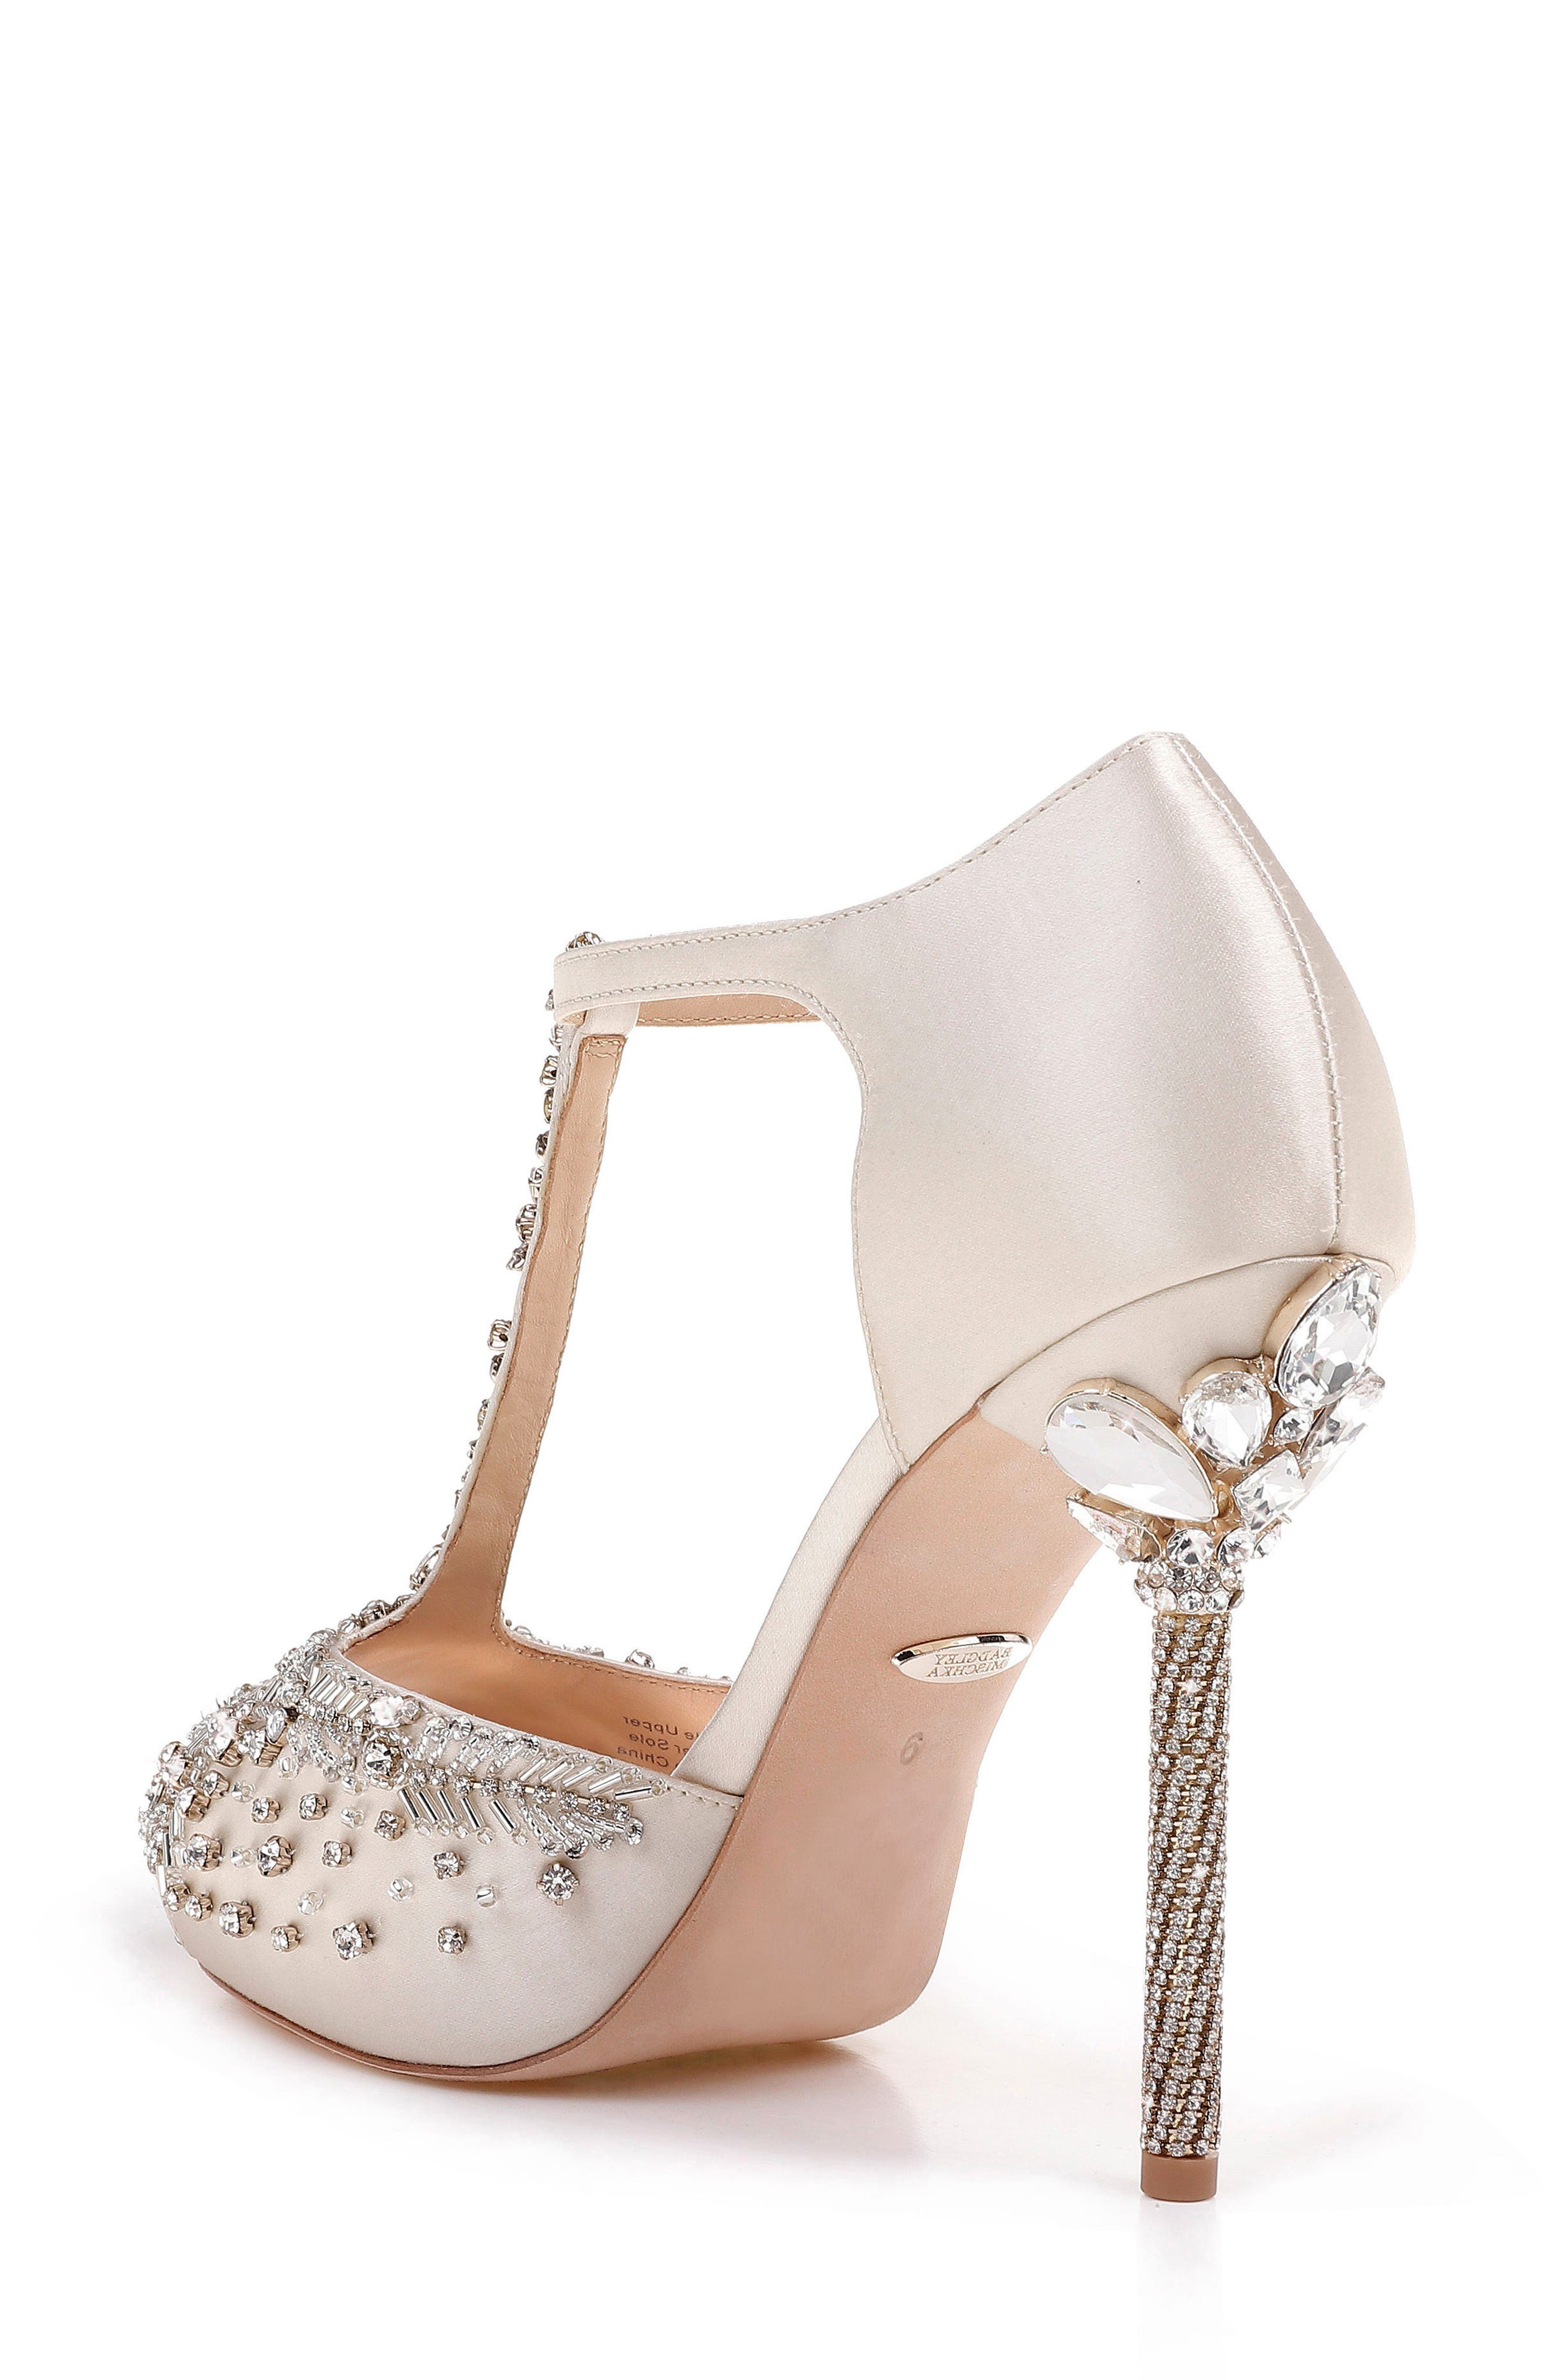 Stacey Crystal Embellished T-Strap Sandal,                             Alternate thumbnail 2, color,                             Ivory Satin